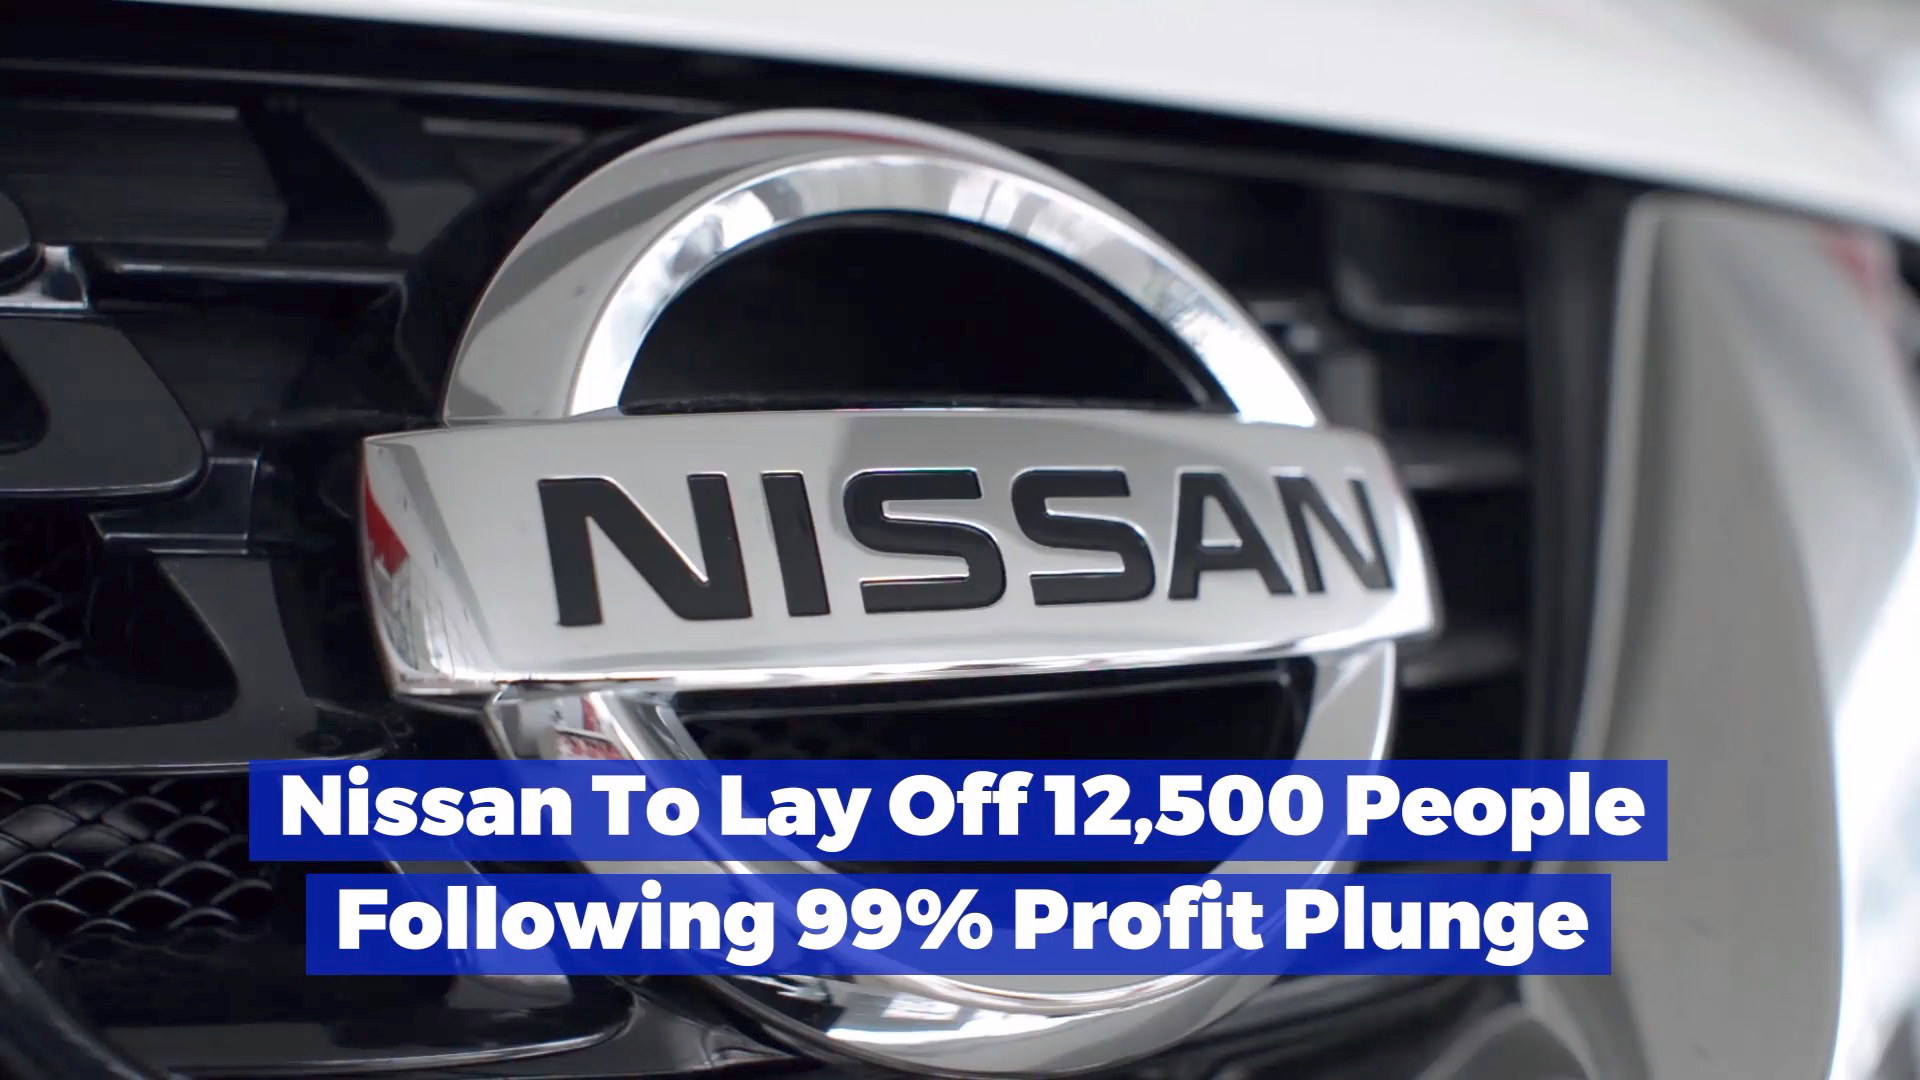 Nissan Pulls The Plug On Thousands Of Employees